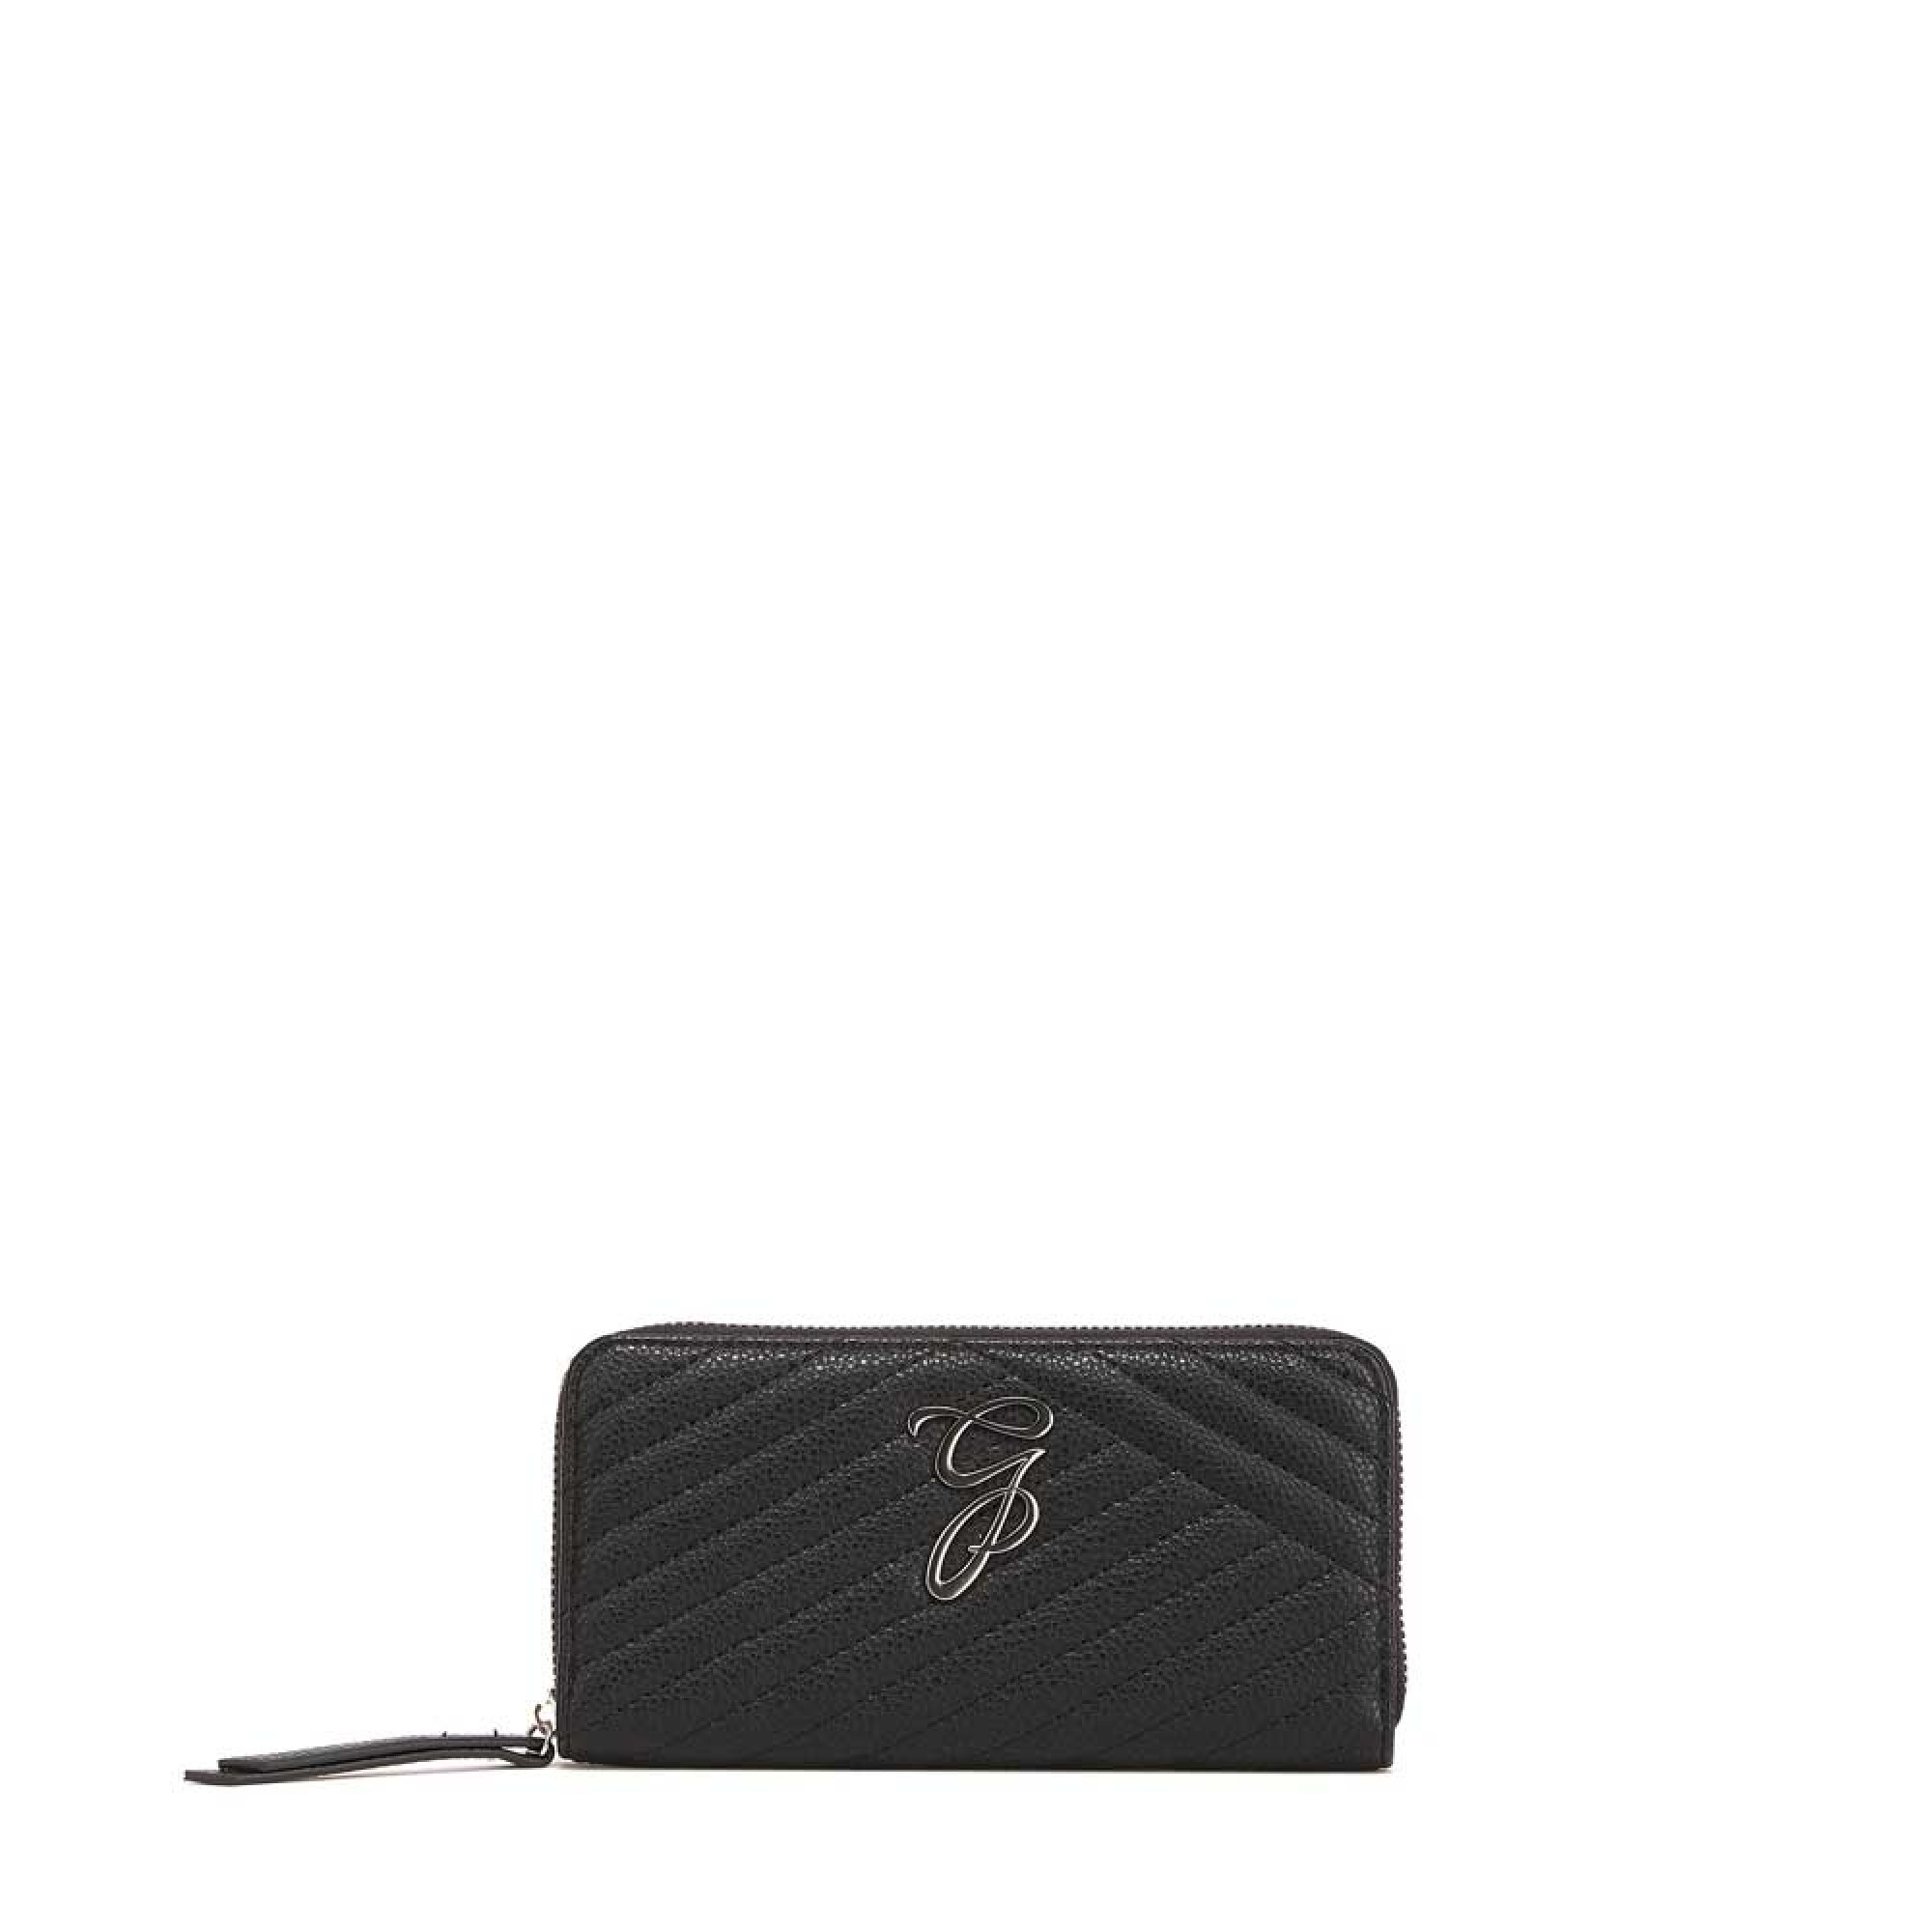 WALLET - GBDA1454 - GAELLE PARIS